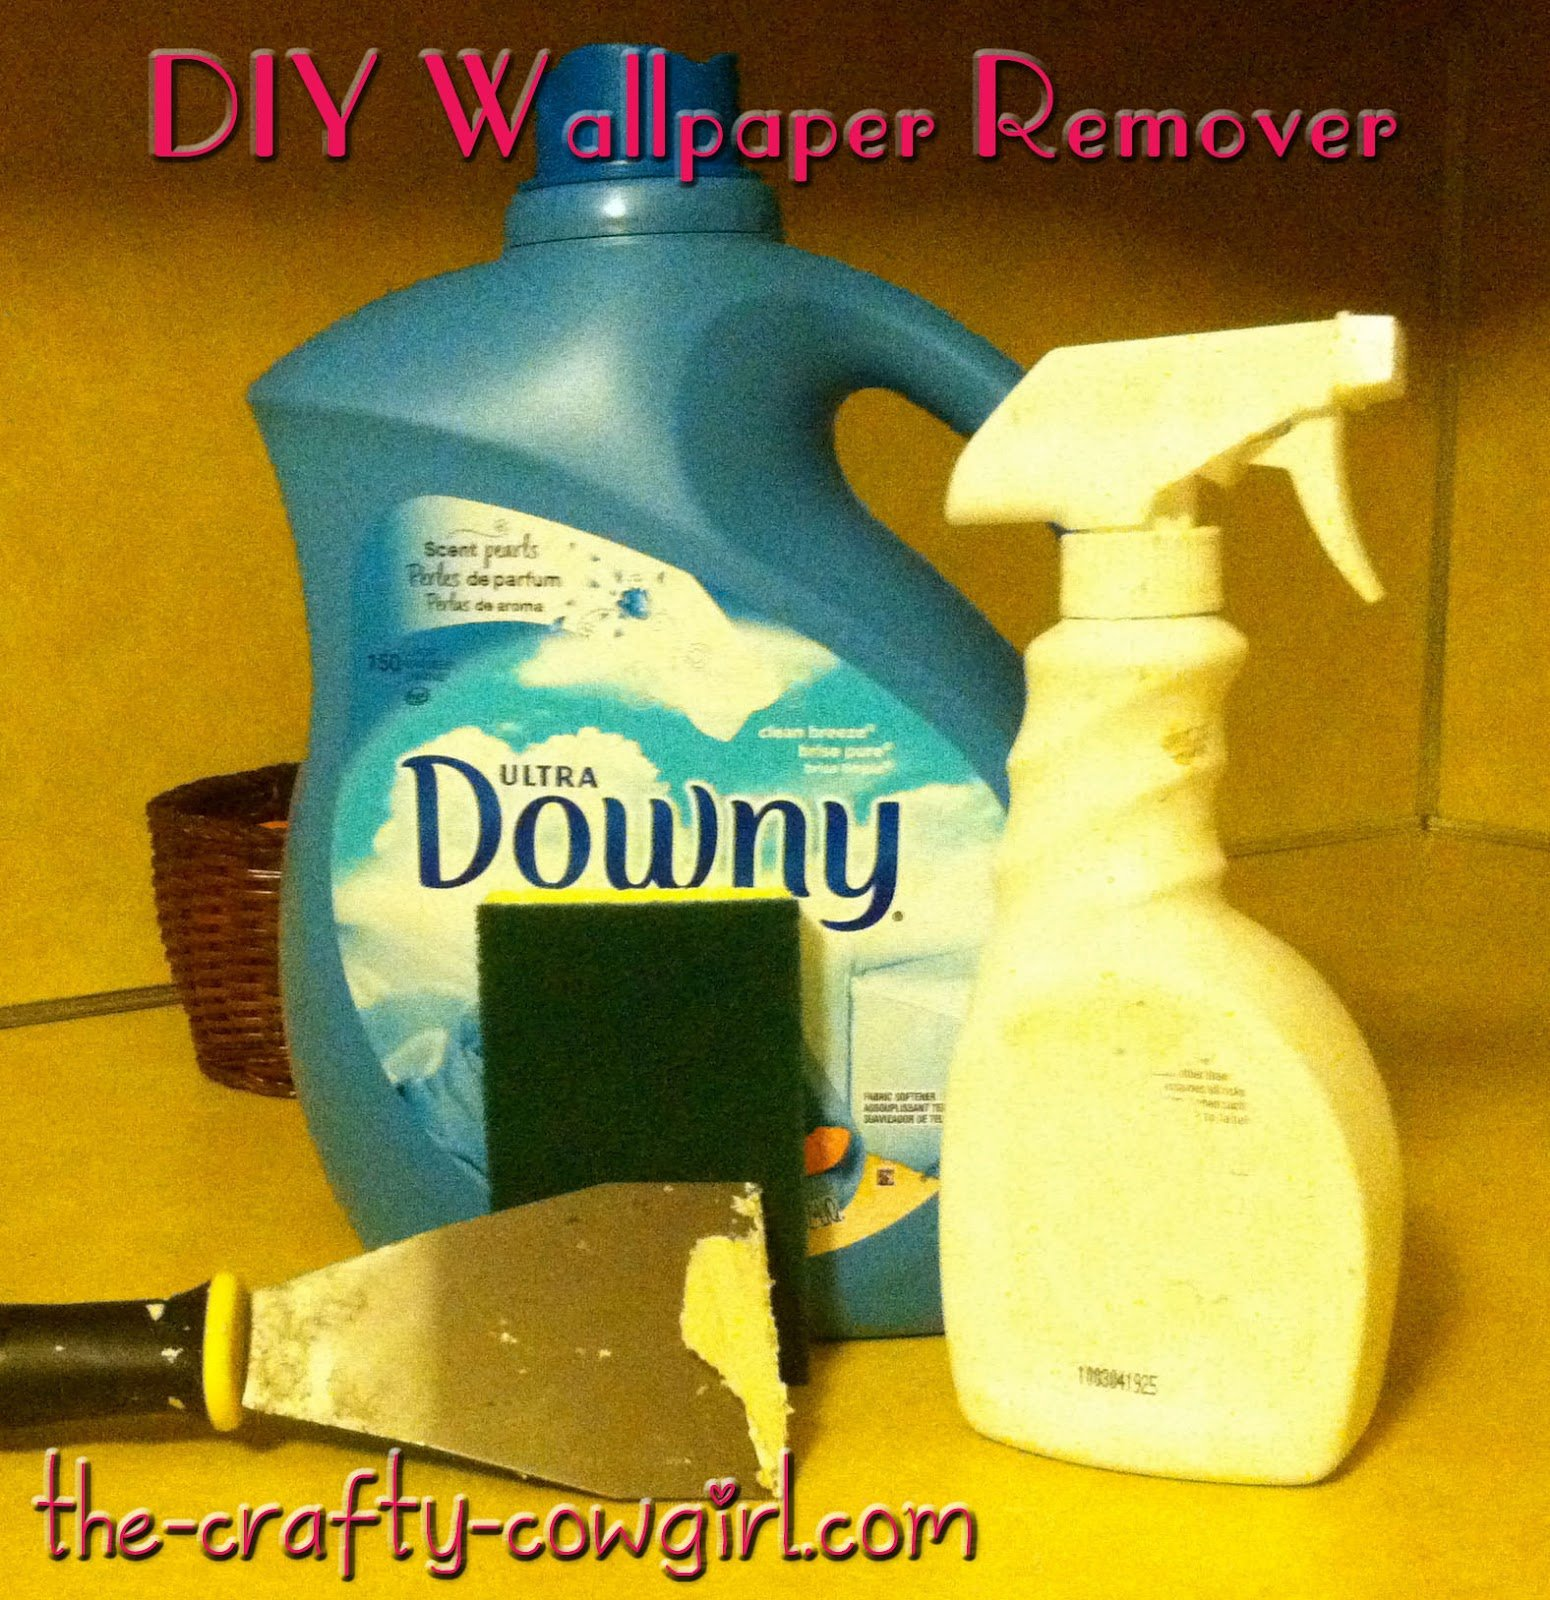 Fabric Wallpaper Fabric Softener Wallpaper Removal 750x500. View 0. Wallpaper Remover 1550x1600